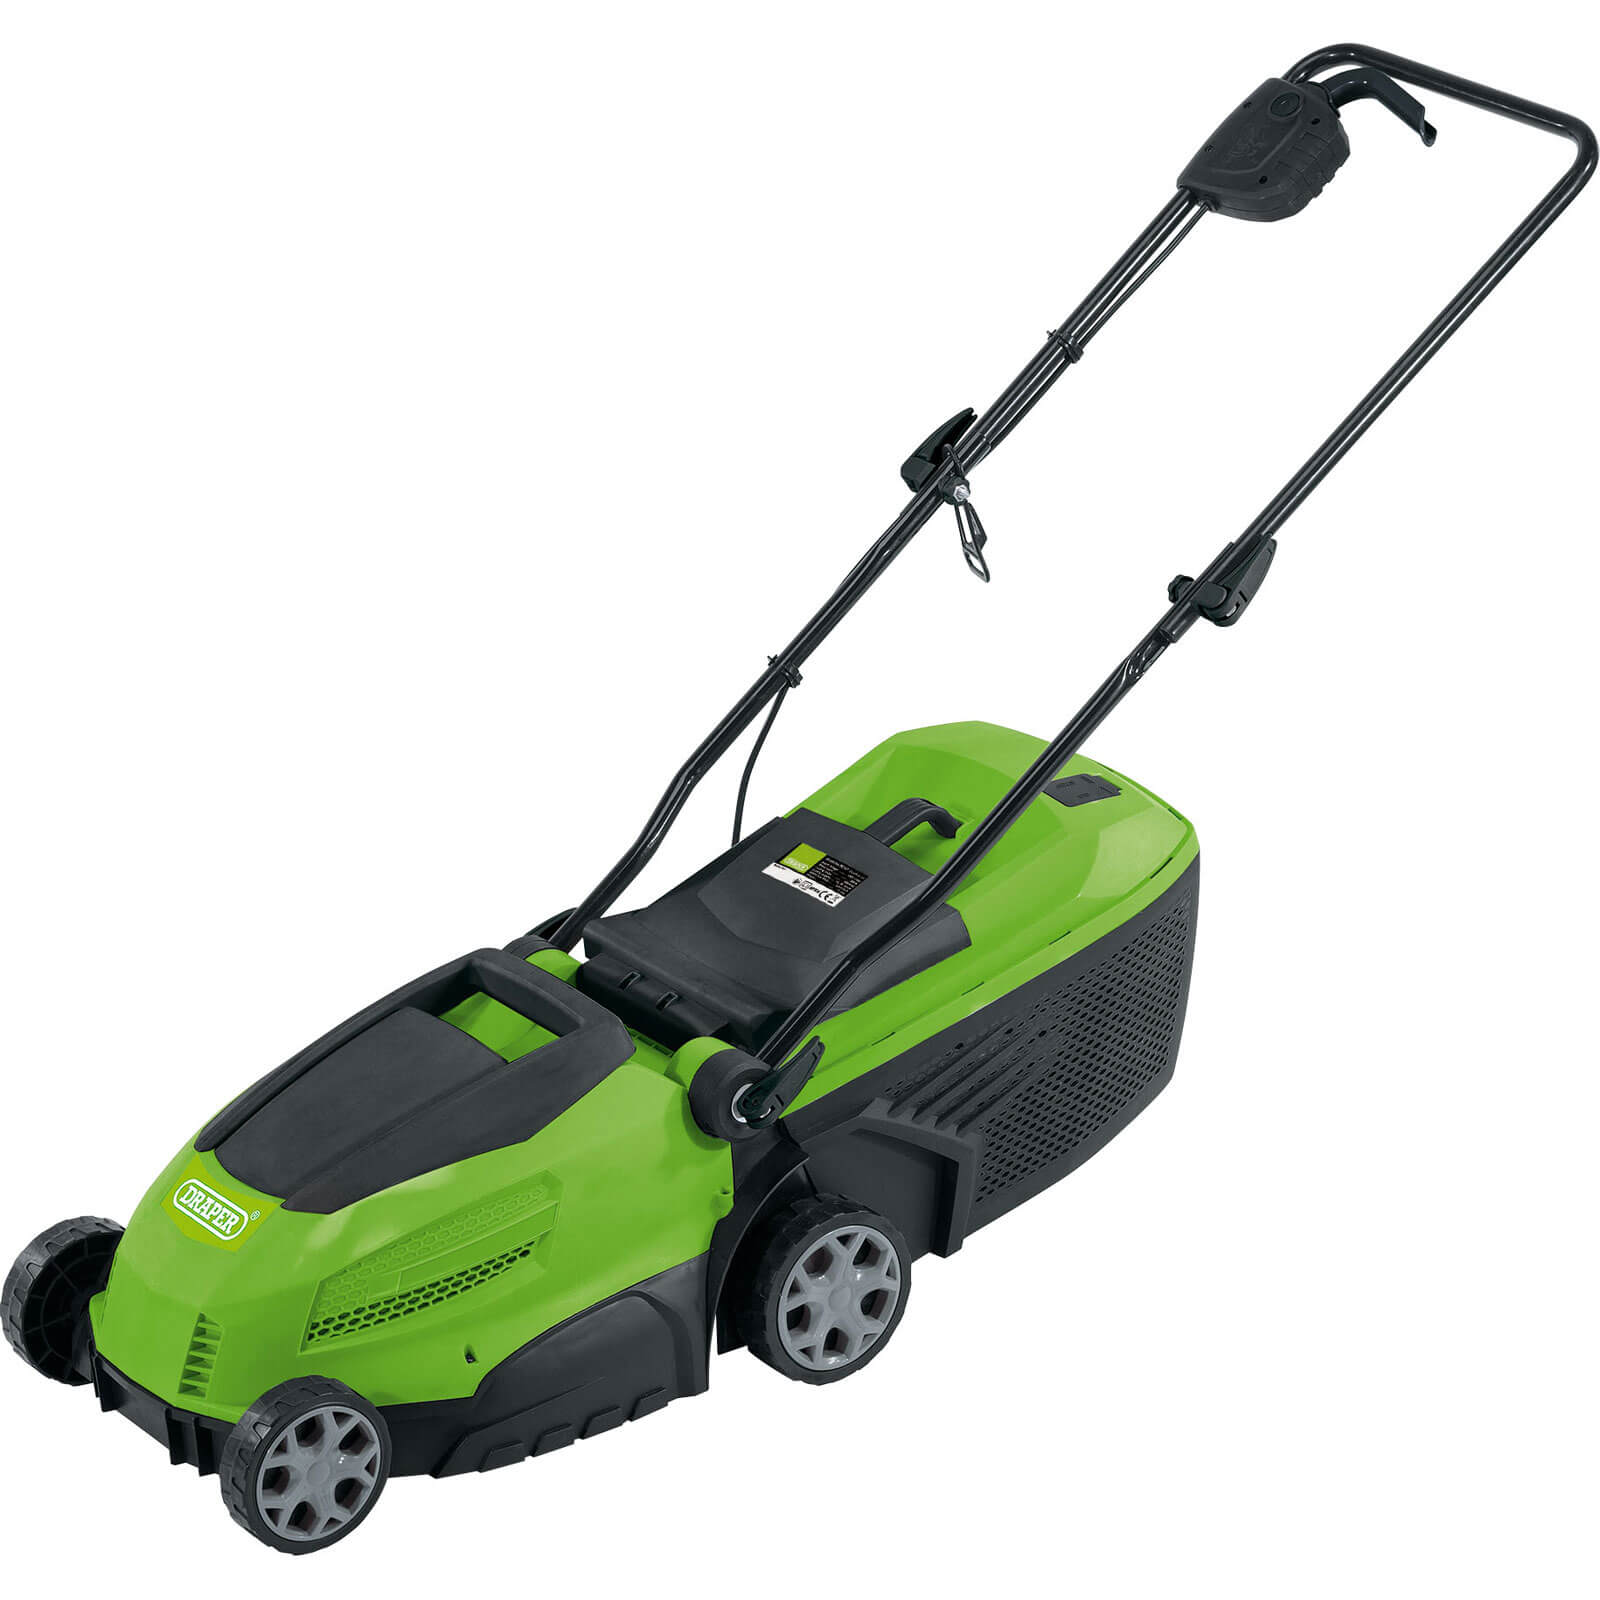 Image of Draper LM32 Rotary Lawnmower 320mm 240v